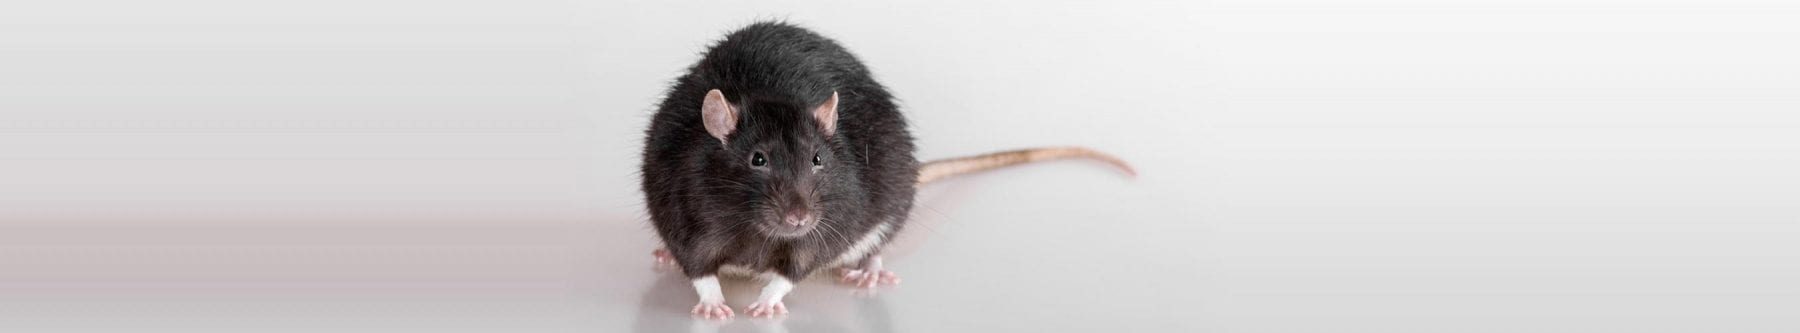 rodent exterminator vancouver bc